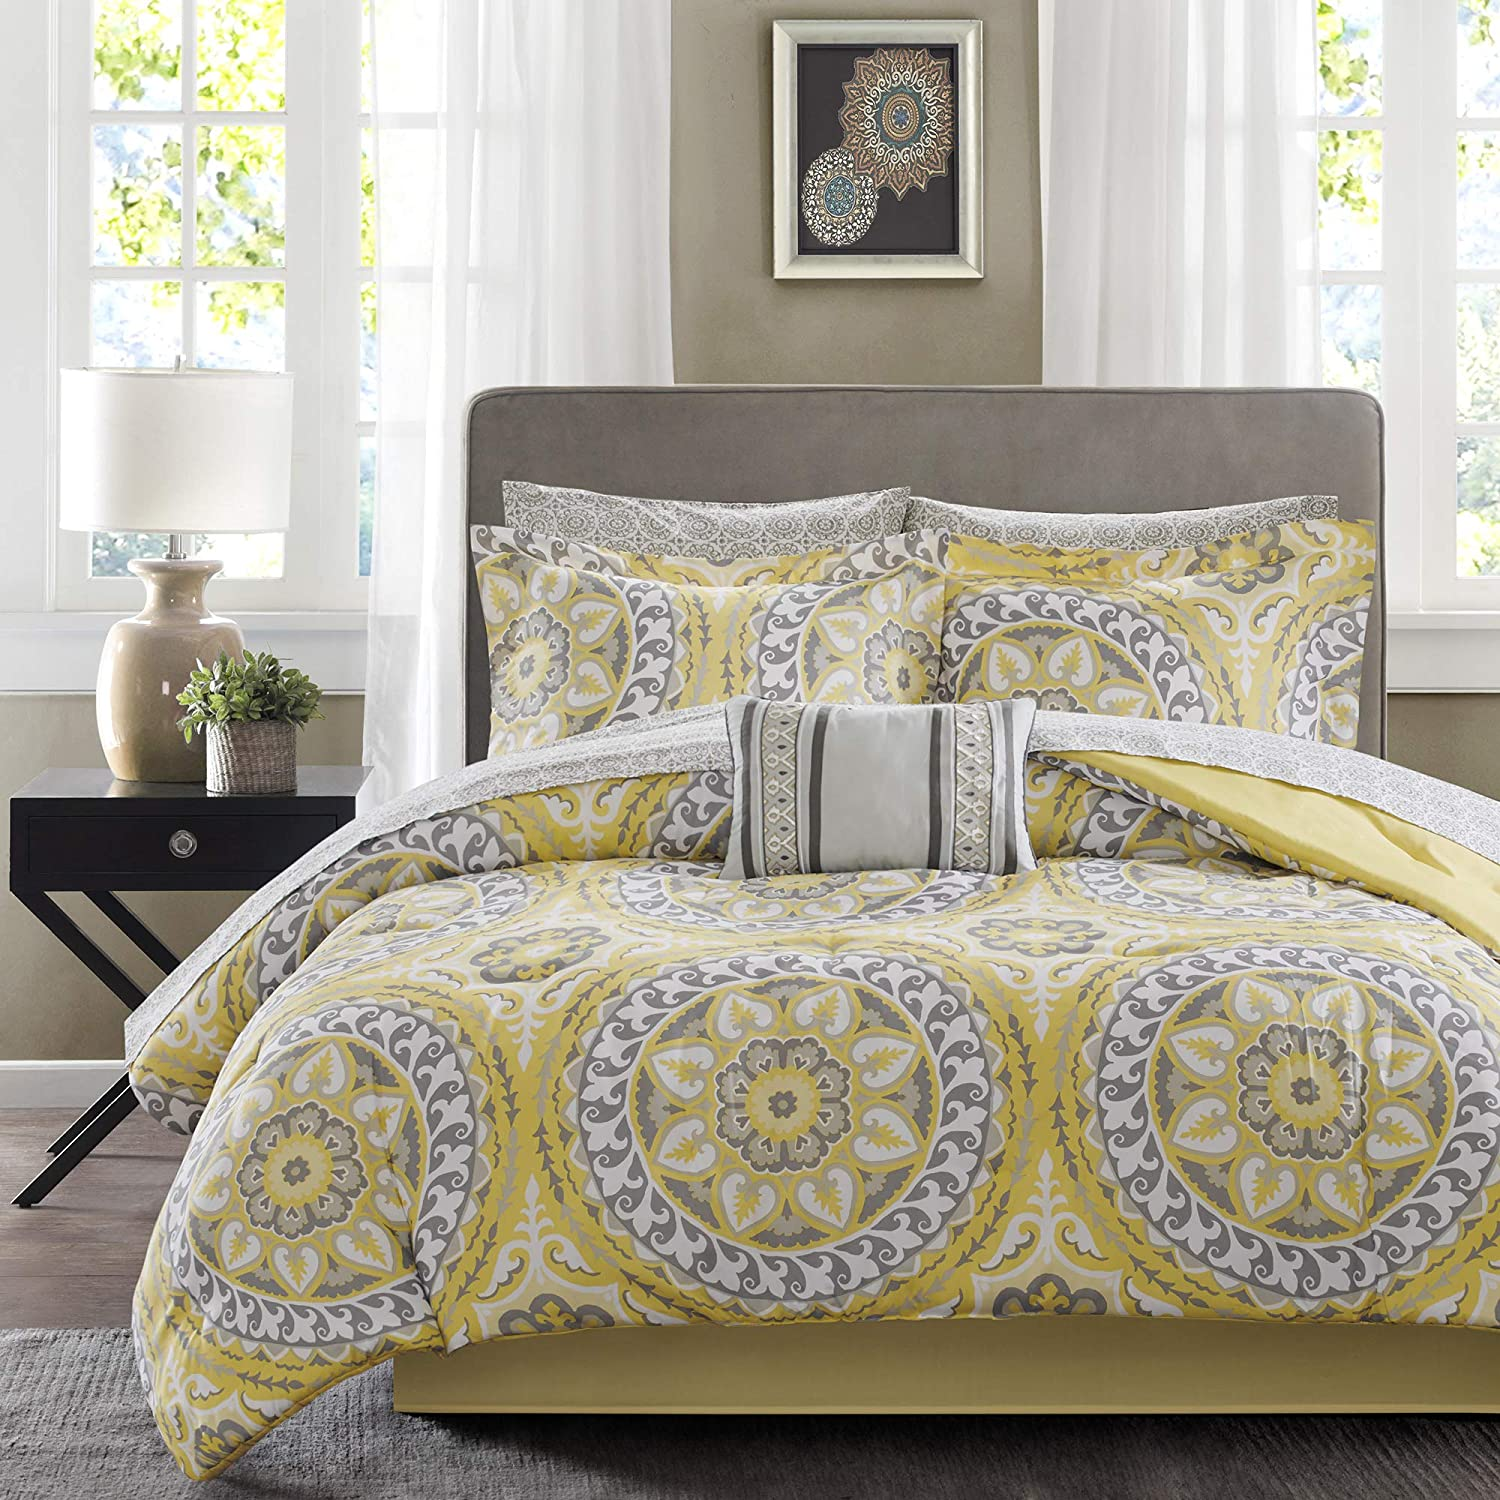 "Madison Park Essentials Cozy Bag Comforter, Medallion Damask Design All Season Down Alternative Complete Sheet Set, Bed Skirt, Twin(68""x86""), Yellow, 7 Piece"